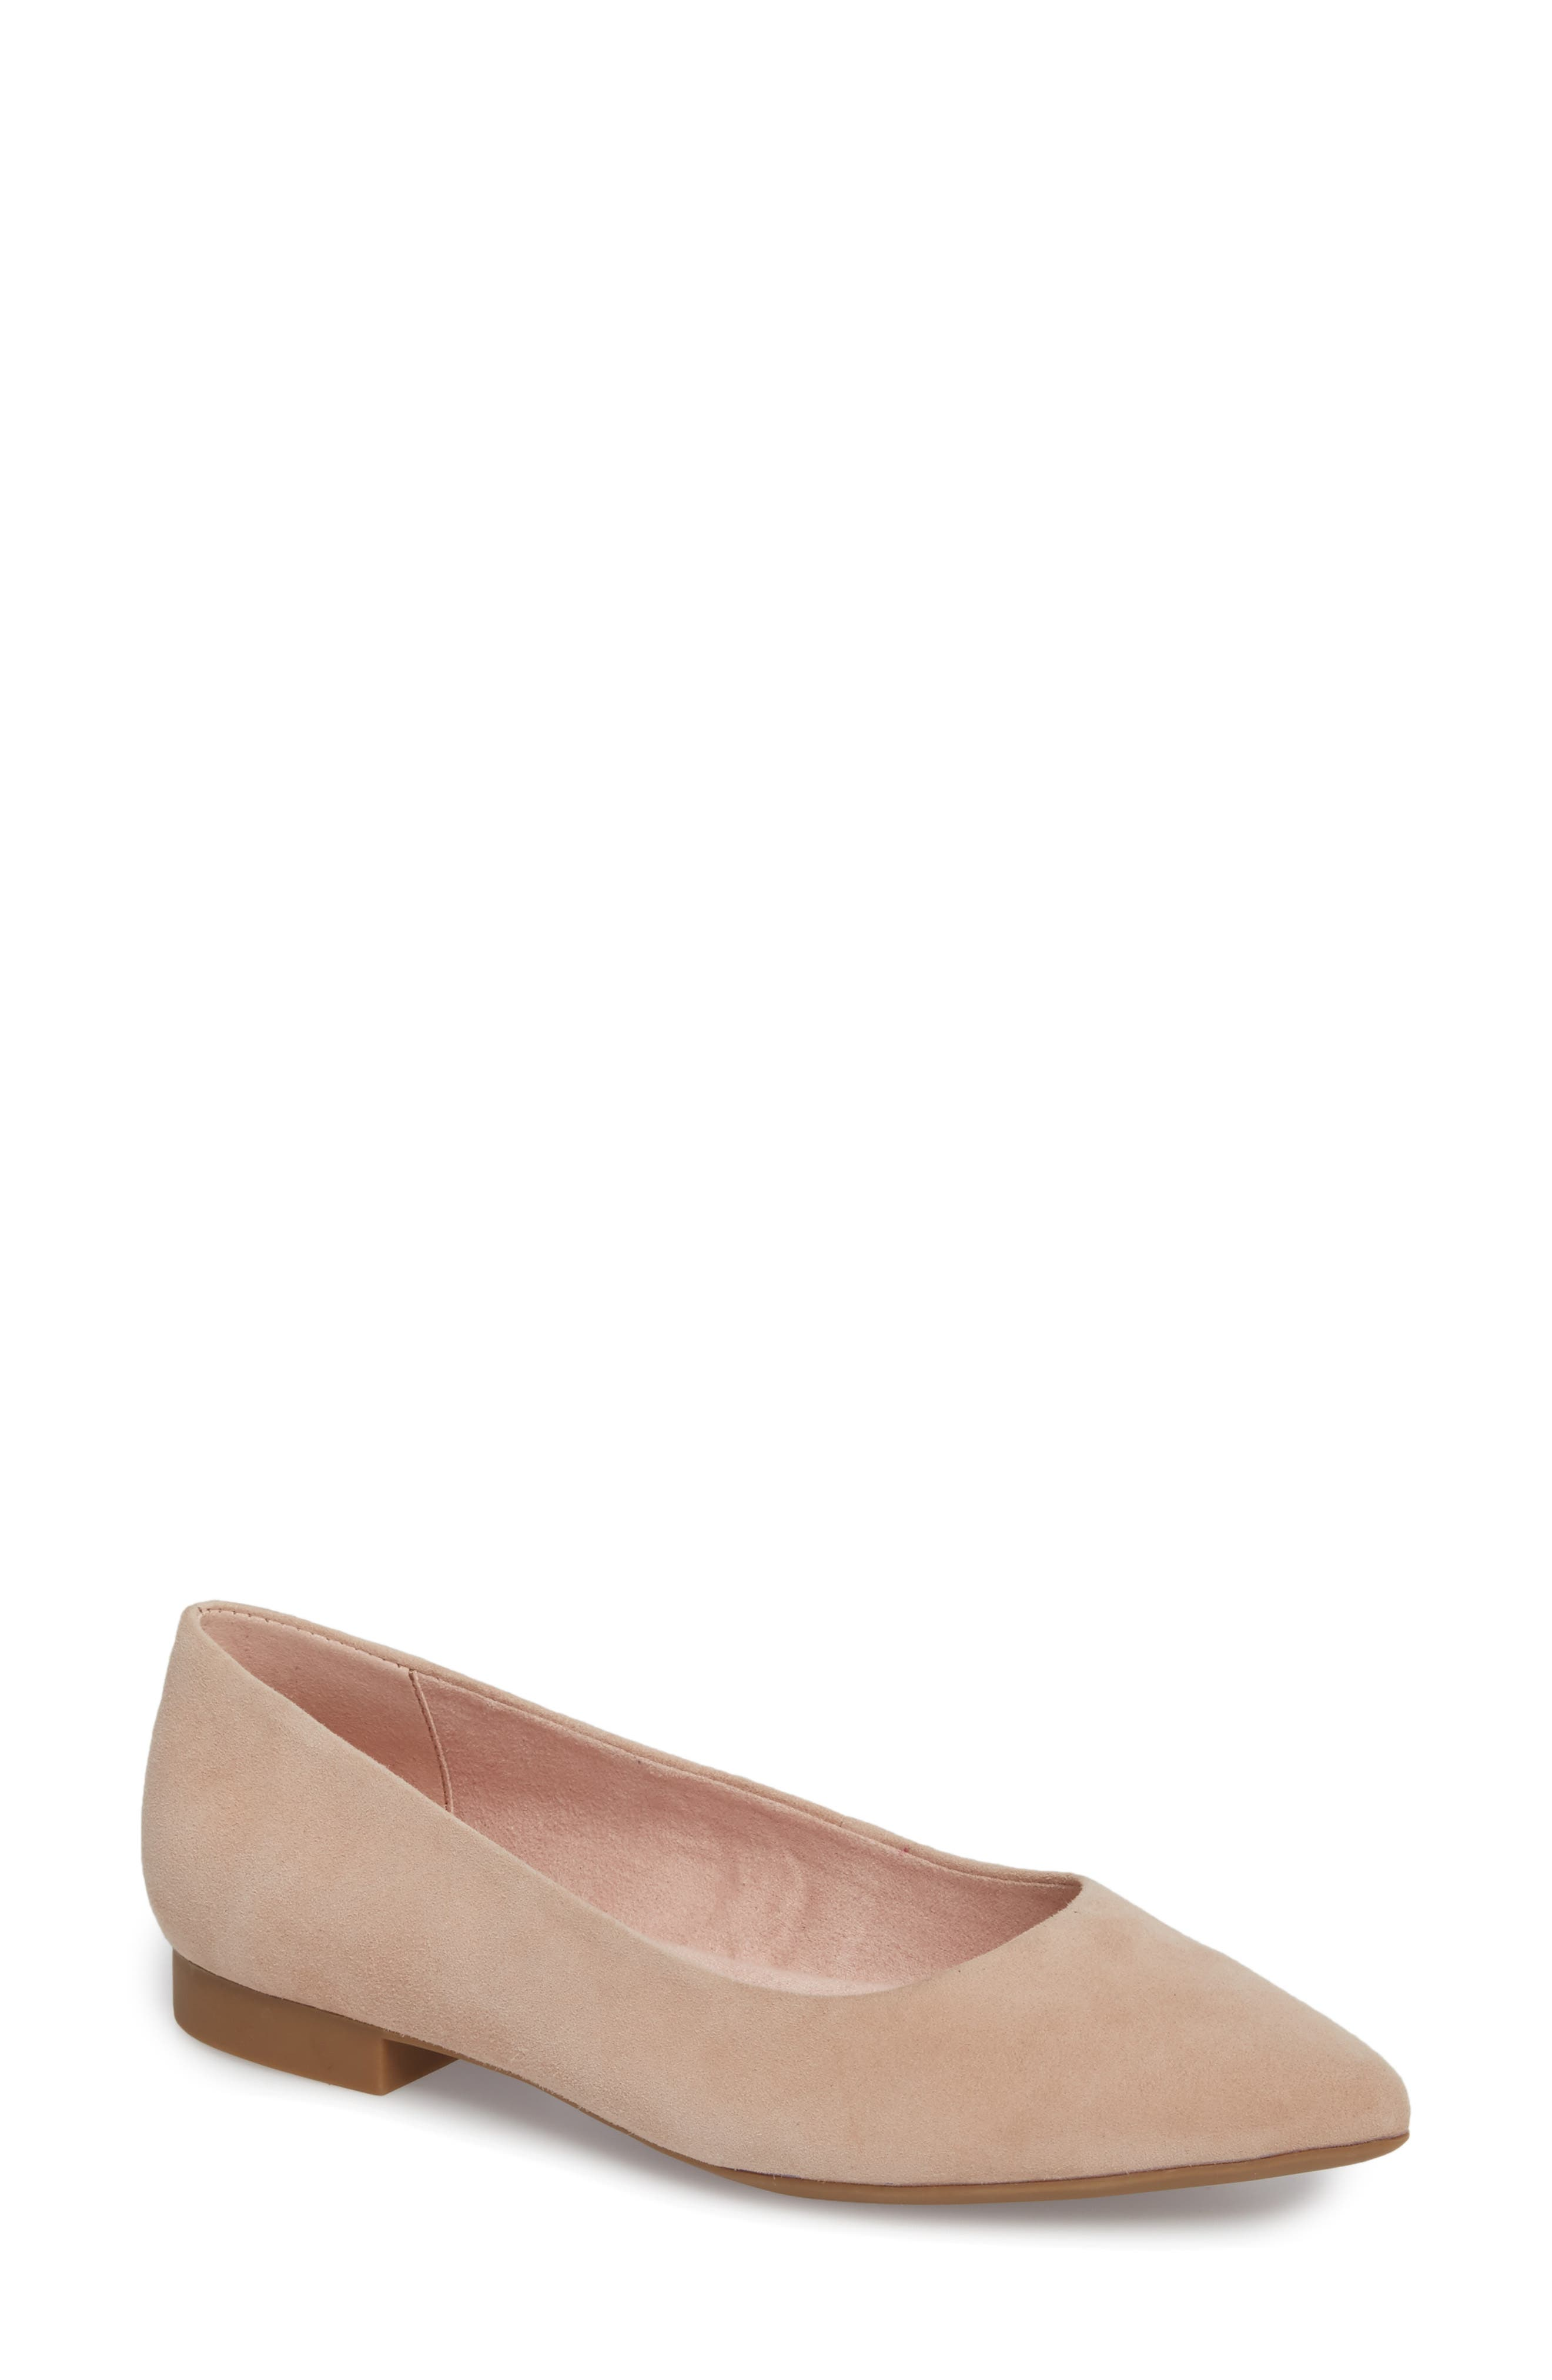 'Vivien' Pointy Toe Flat,                         Main,                         color, BLUSH SUEDE